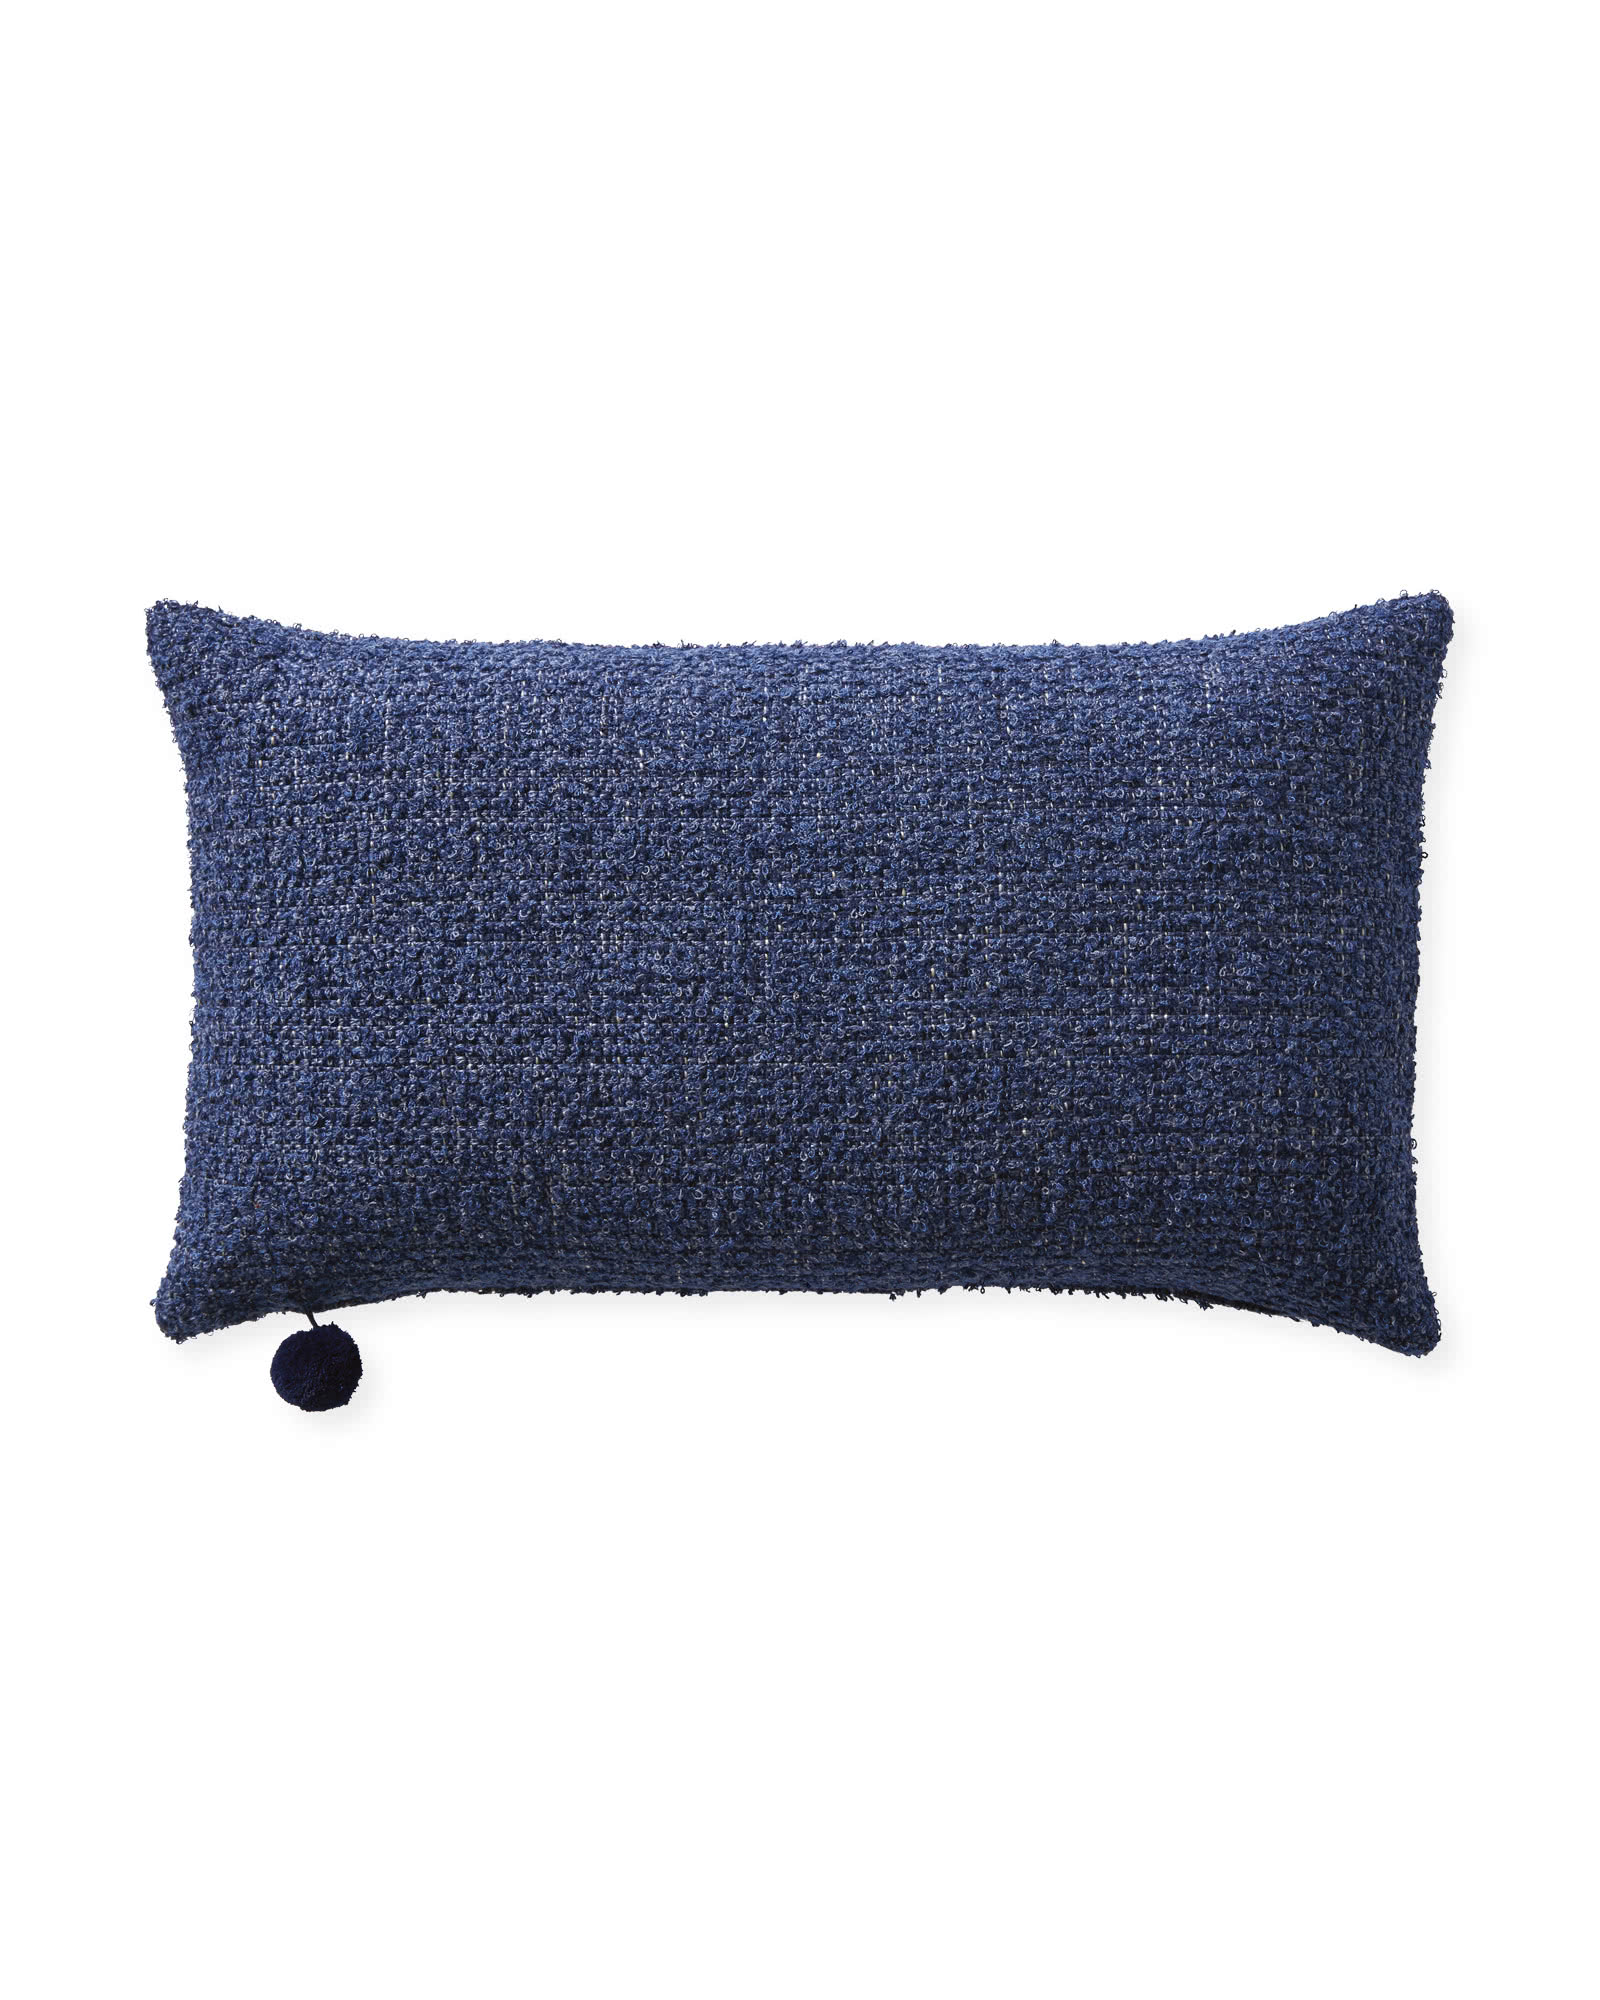 Perennials® Textured Loop Pillow Cover, Navy